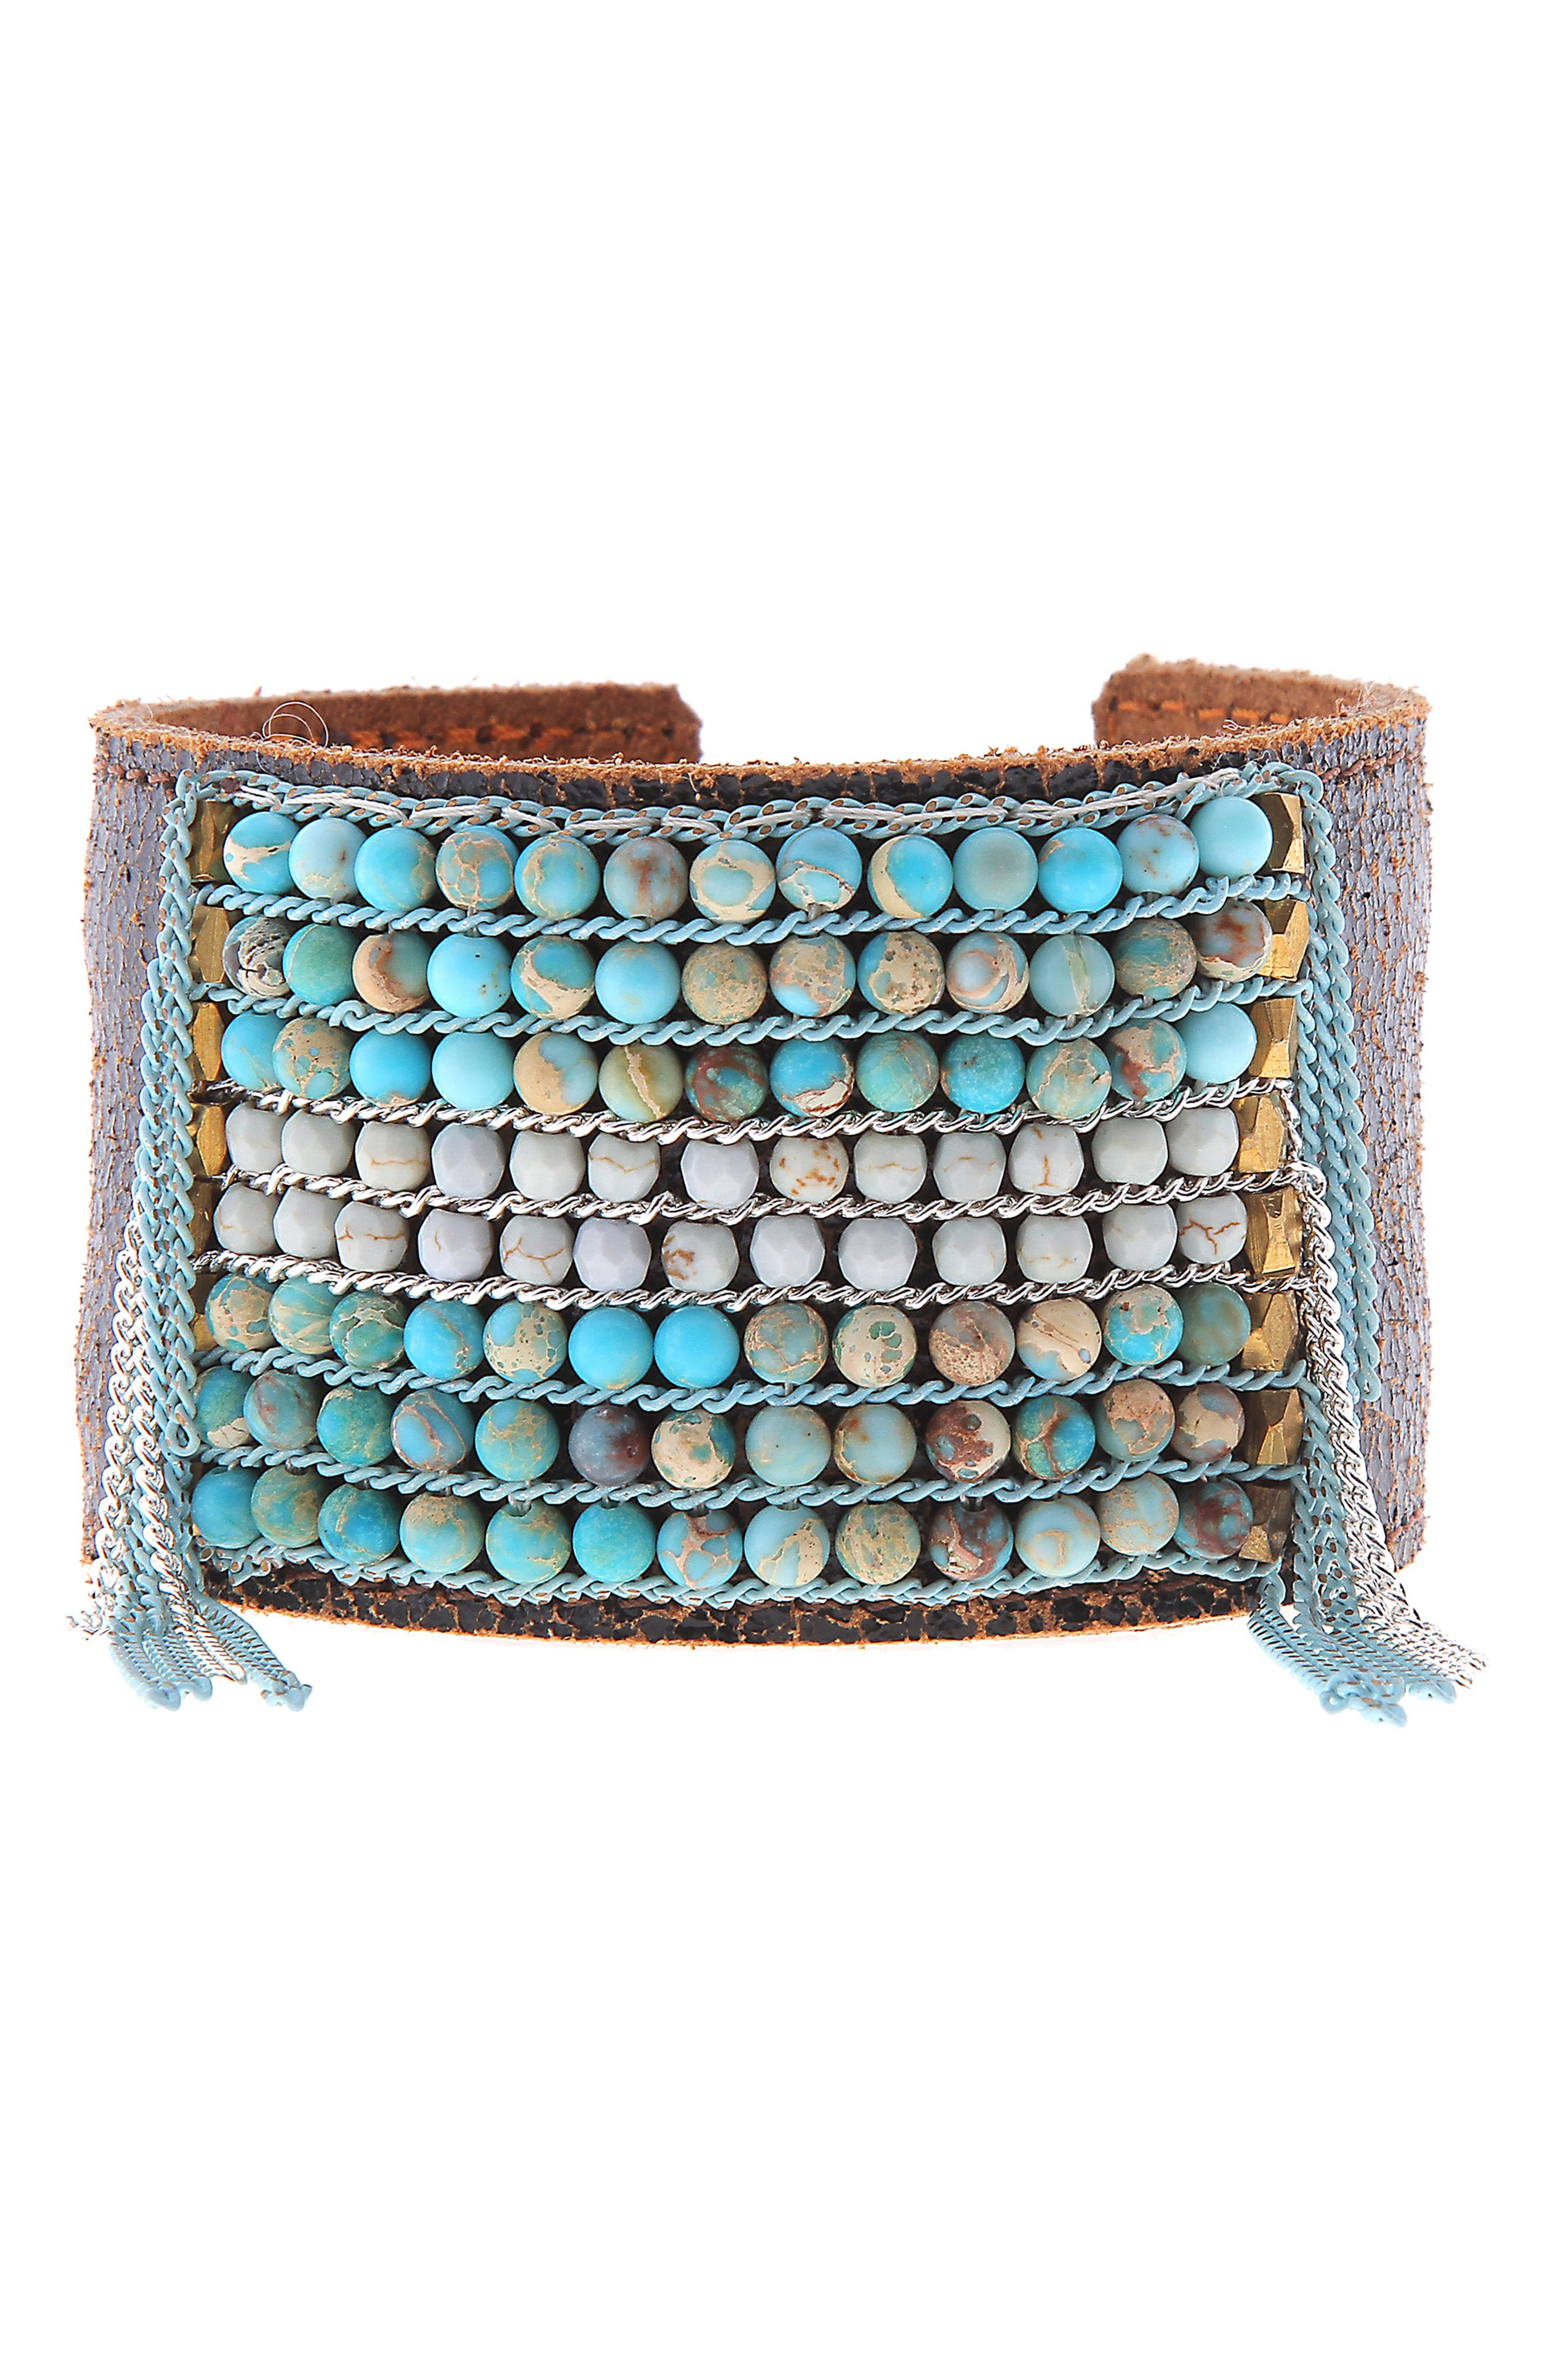 Stone Cuff Bracelet,                             Main thumbnail 1, color,                             TURQUOISE